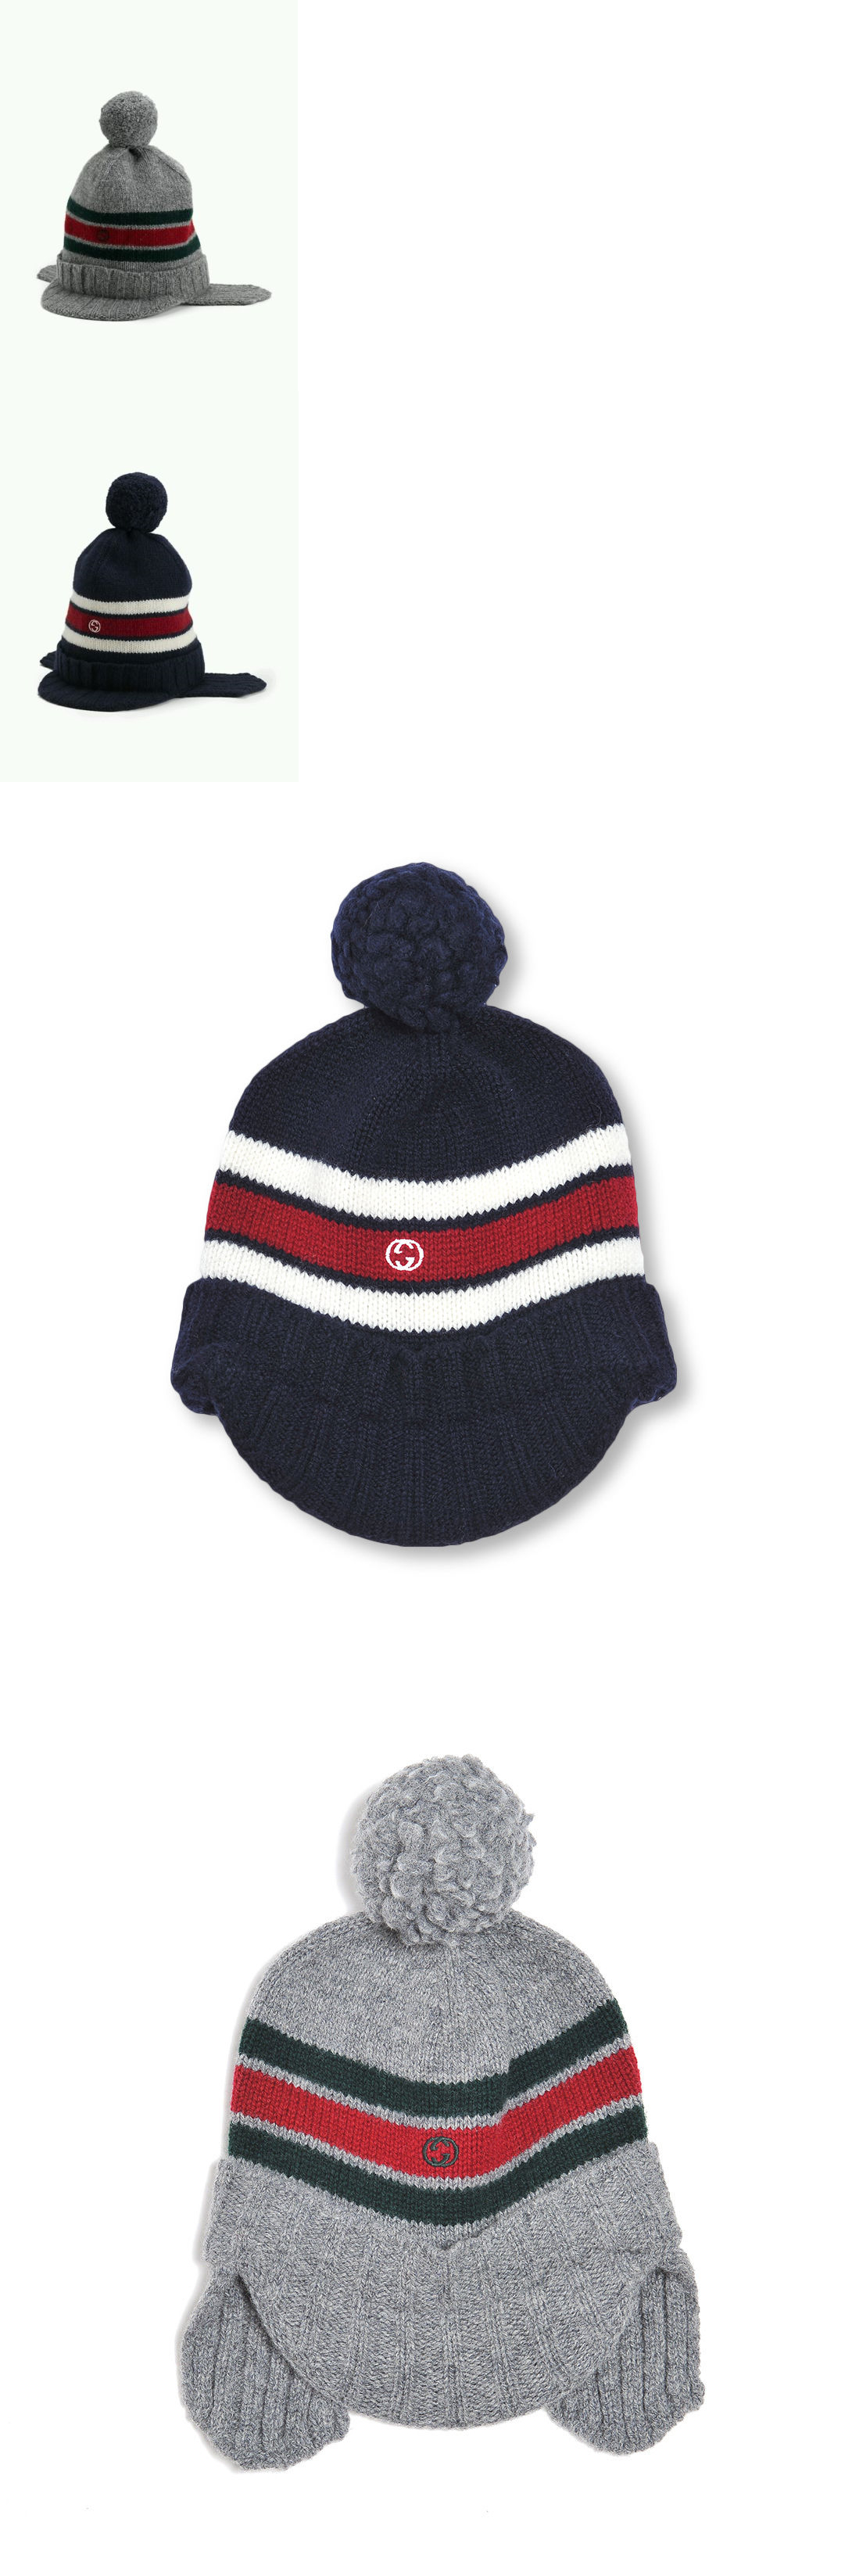 7a2a4ad6a060a Hats 57884  Nwt New Gucci Kids Boys Navy Or Gray Wool Knit Hat Ear Flaps  Red Web S 269511 -  BUY IT NOW ONLY   99 on eBay!